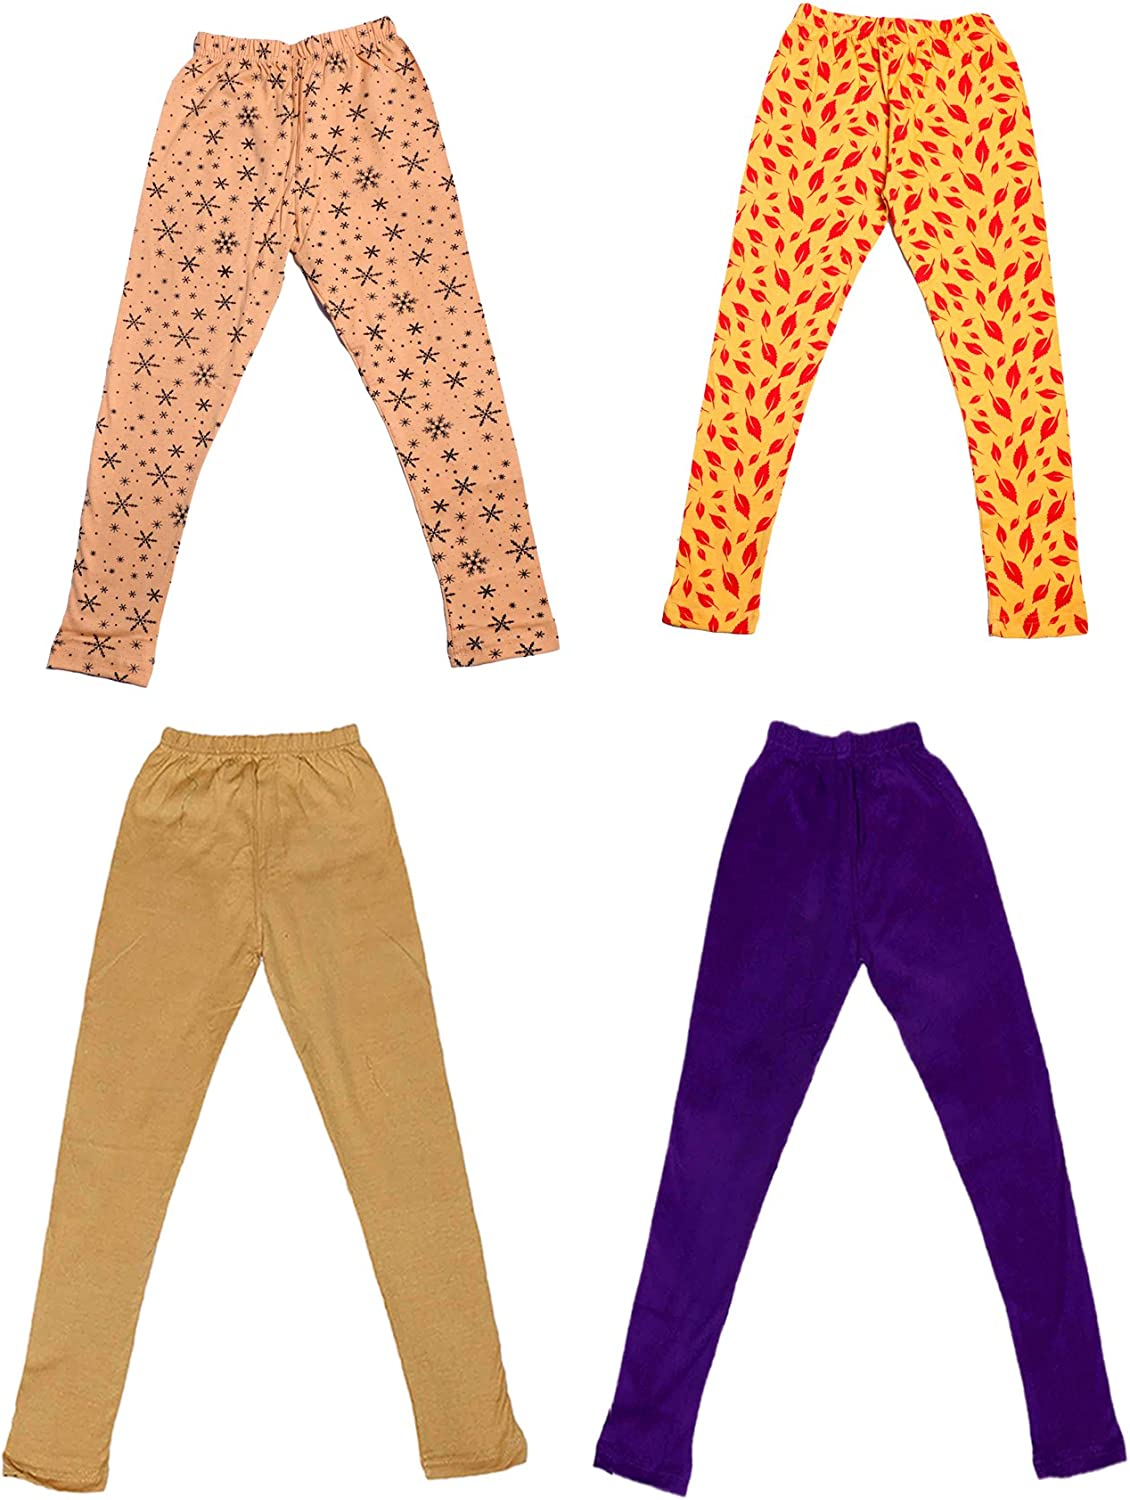 and 2 Cotton Printed Legging Pants Pack Of 4 /_Multicolor/_Size-7-8 Years/_71401021819-IW-P4-30 Indistar Girls 2 Cotton Solid Legging Pants